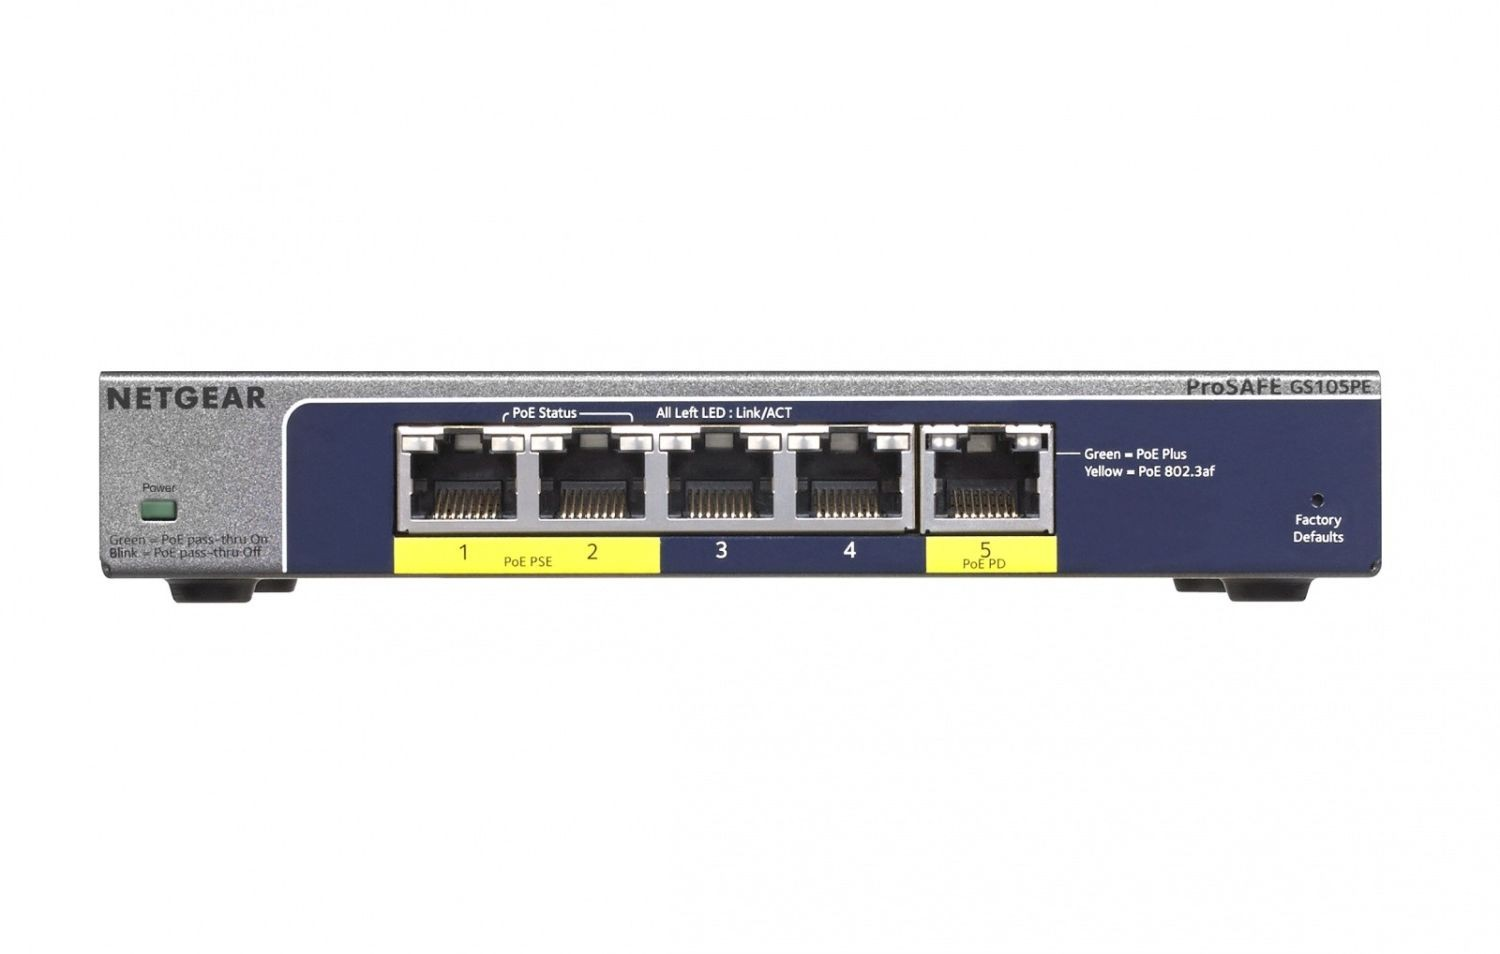 Netgear ProSafe Plus 5-Port Gigabit Switch, 2x PoE, 1x PoE PD (GS105PE)